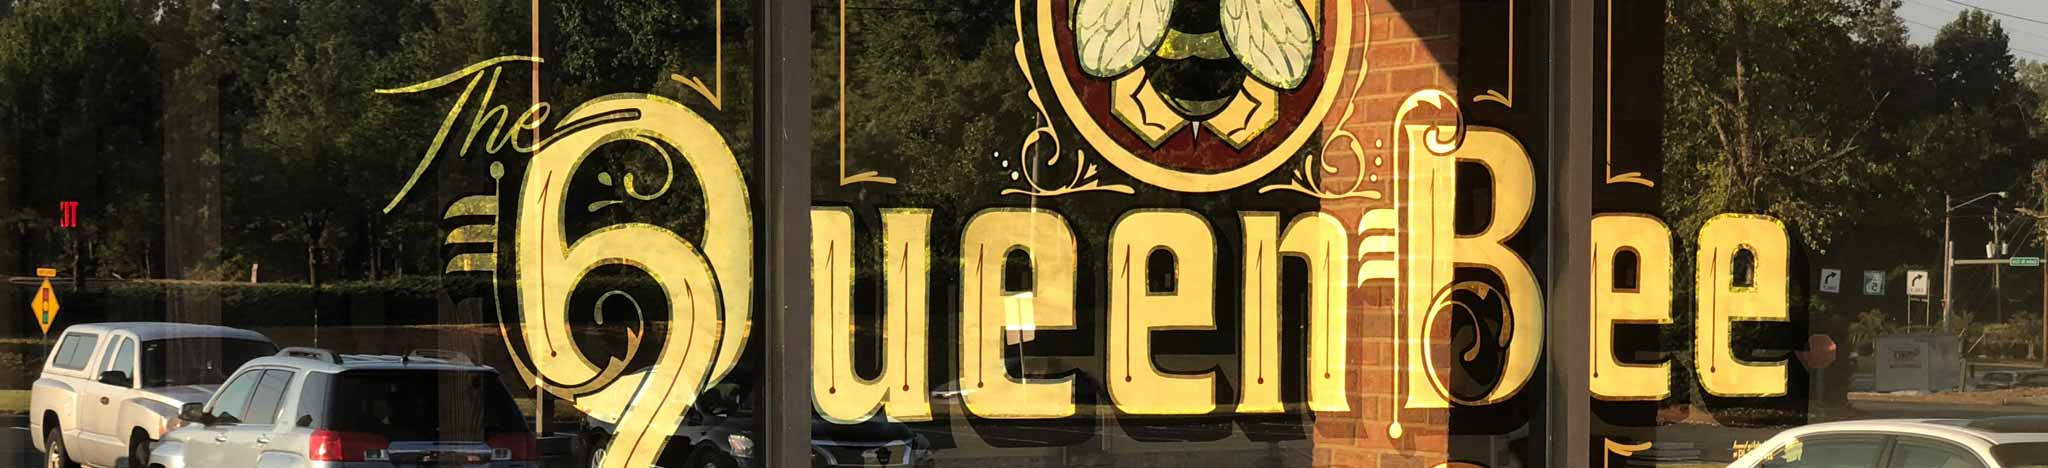 Welcome to Queen Bee Tattoo Parlour